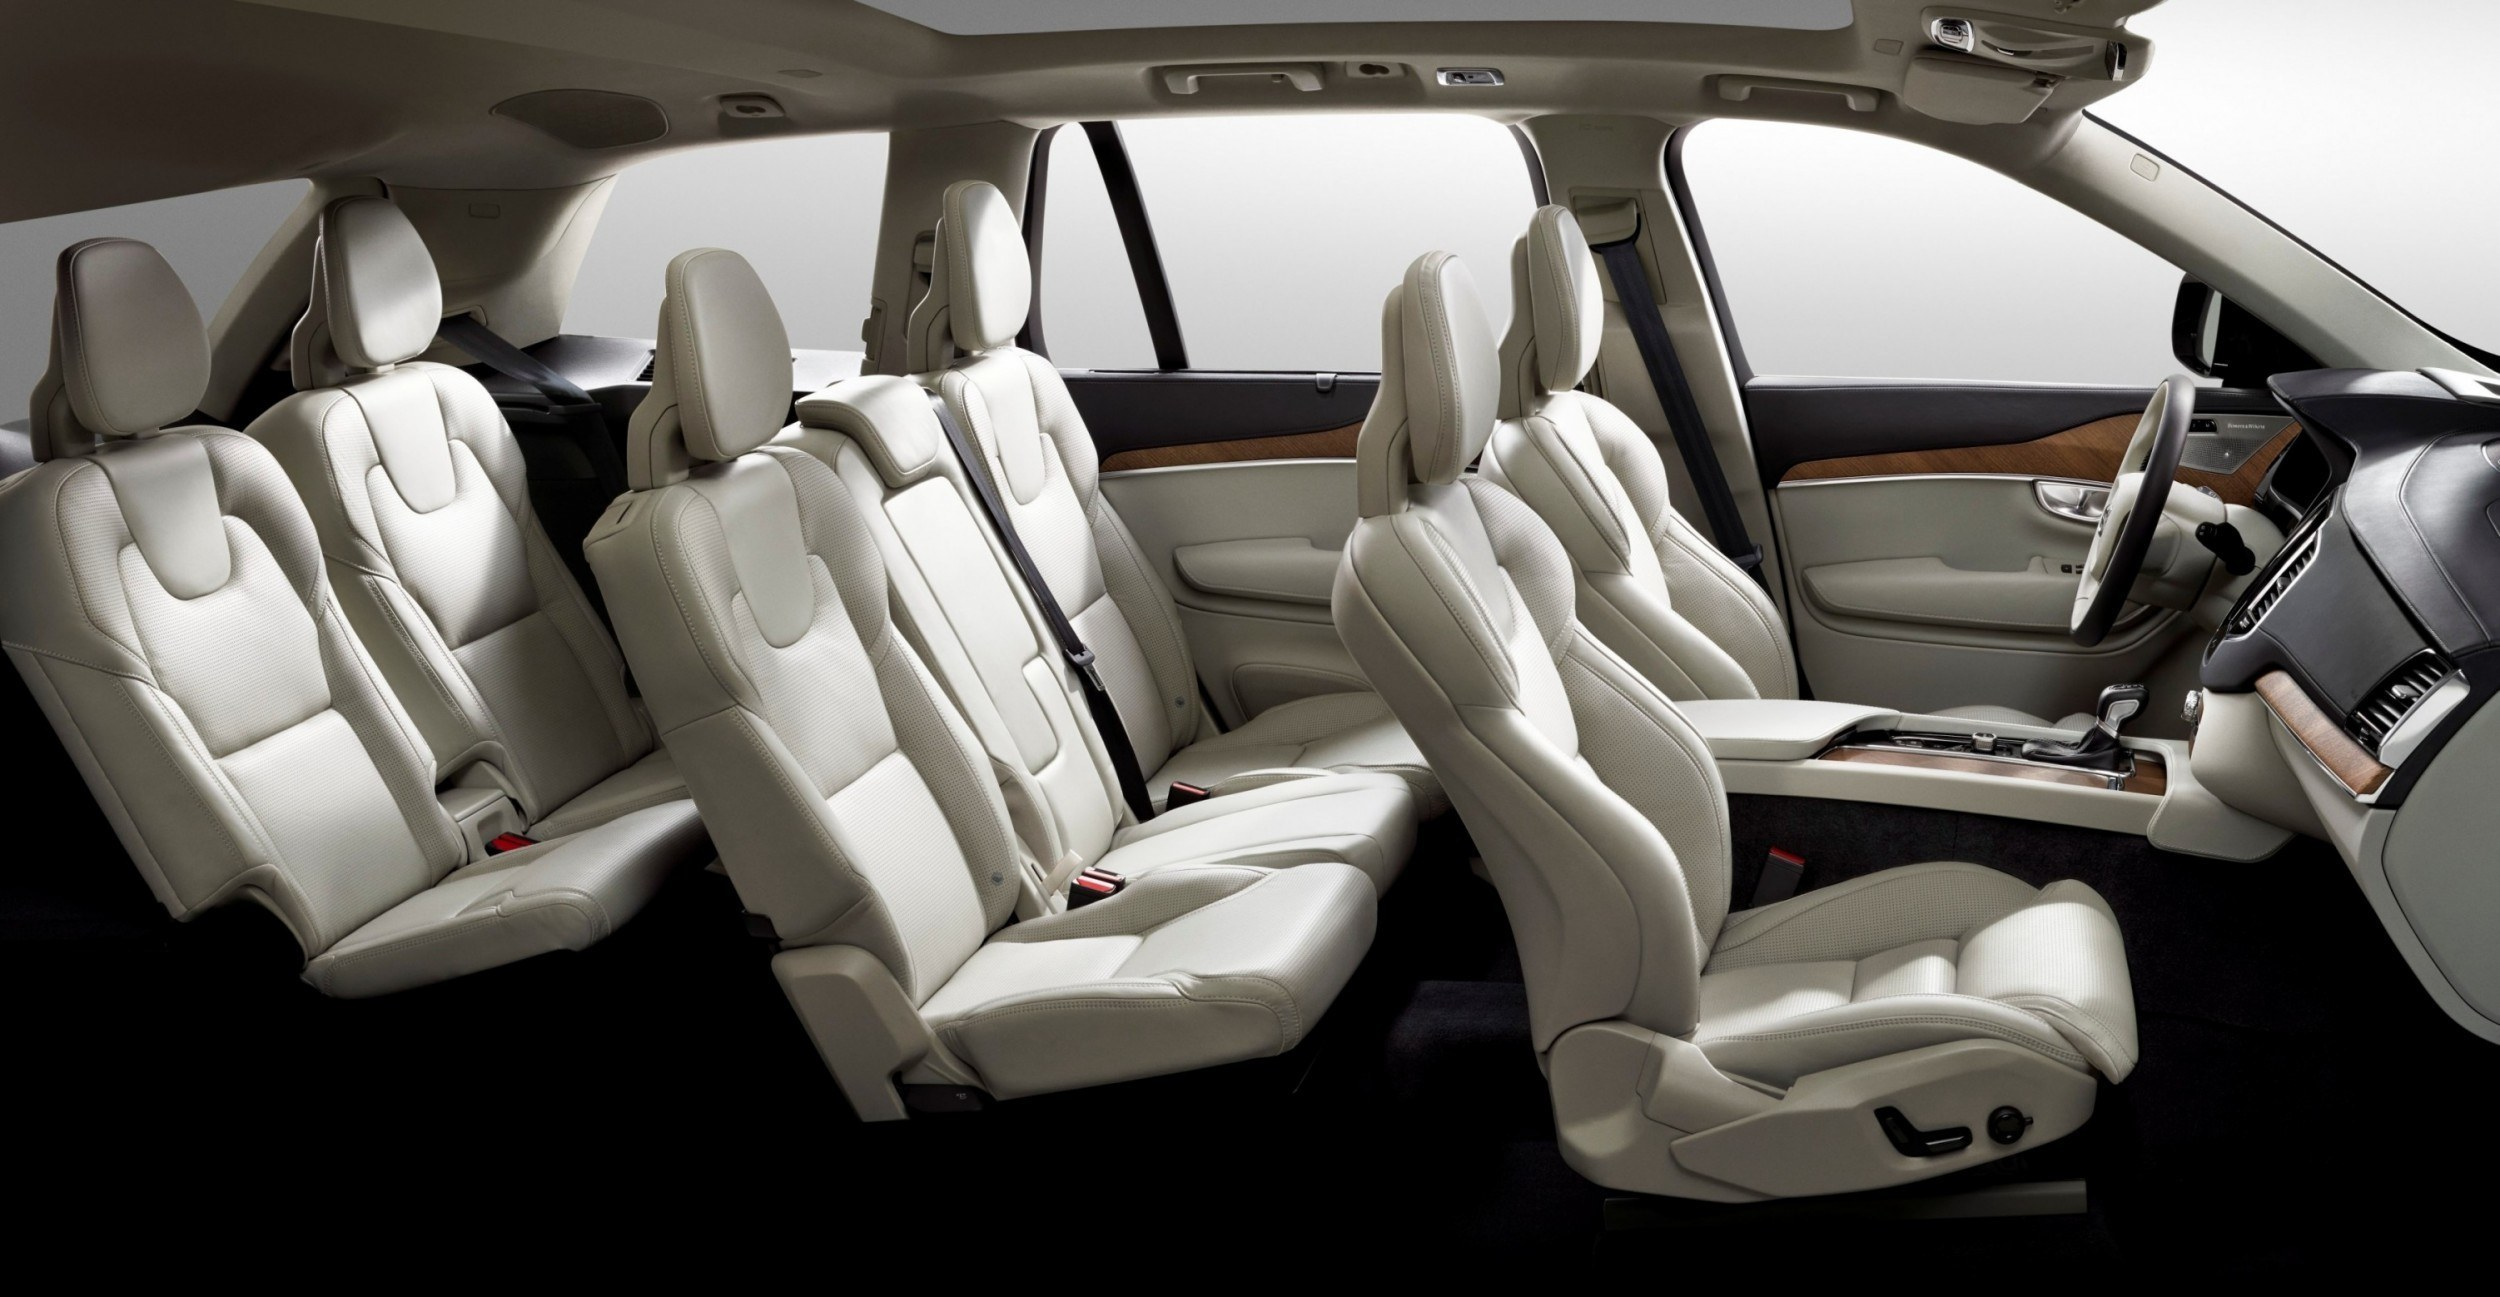 2015 Volvo XC90 Interior Is 7-Seat Comfort, Luxury and Tech